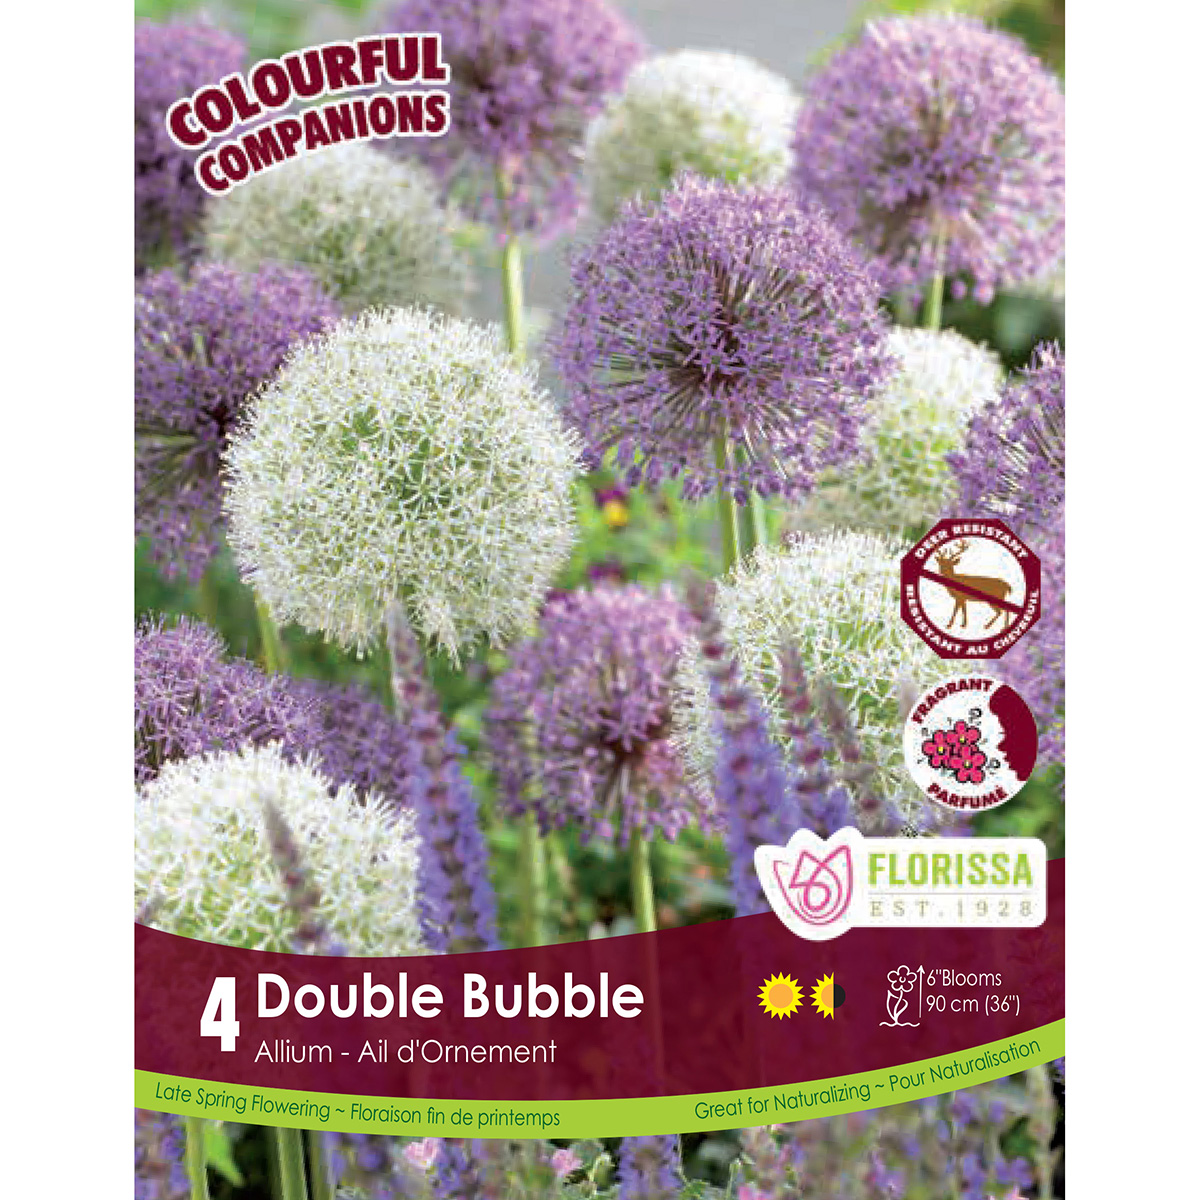 Colourful Companoins 'Double Bubble' Allium Bulbs